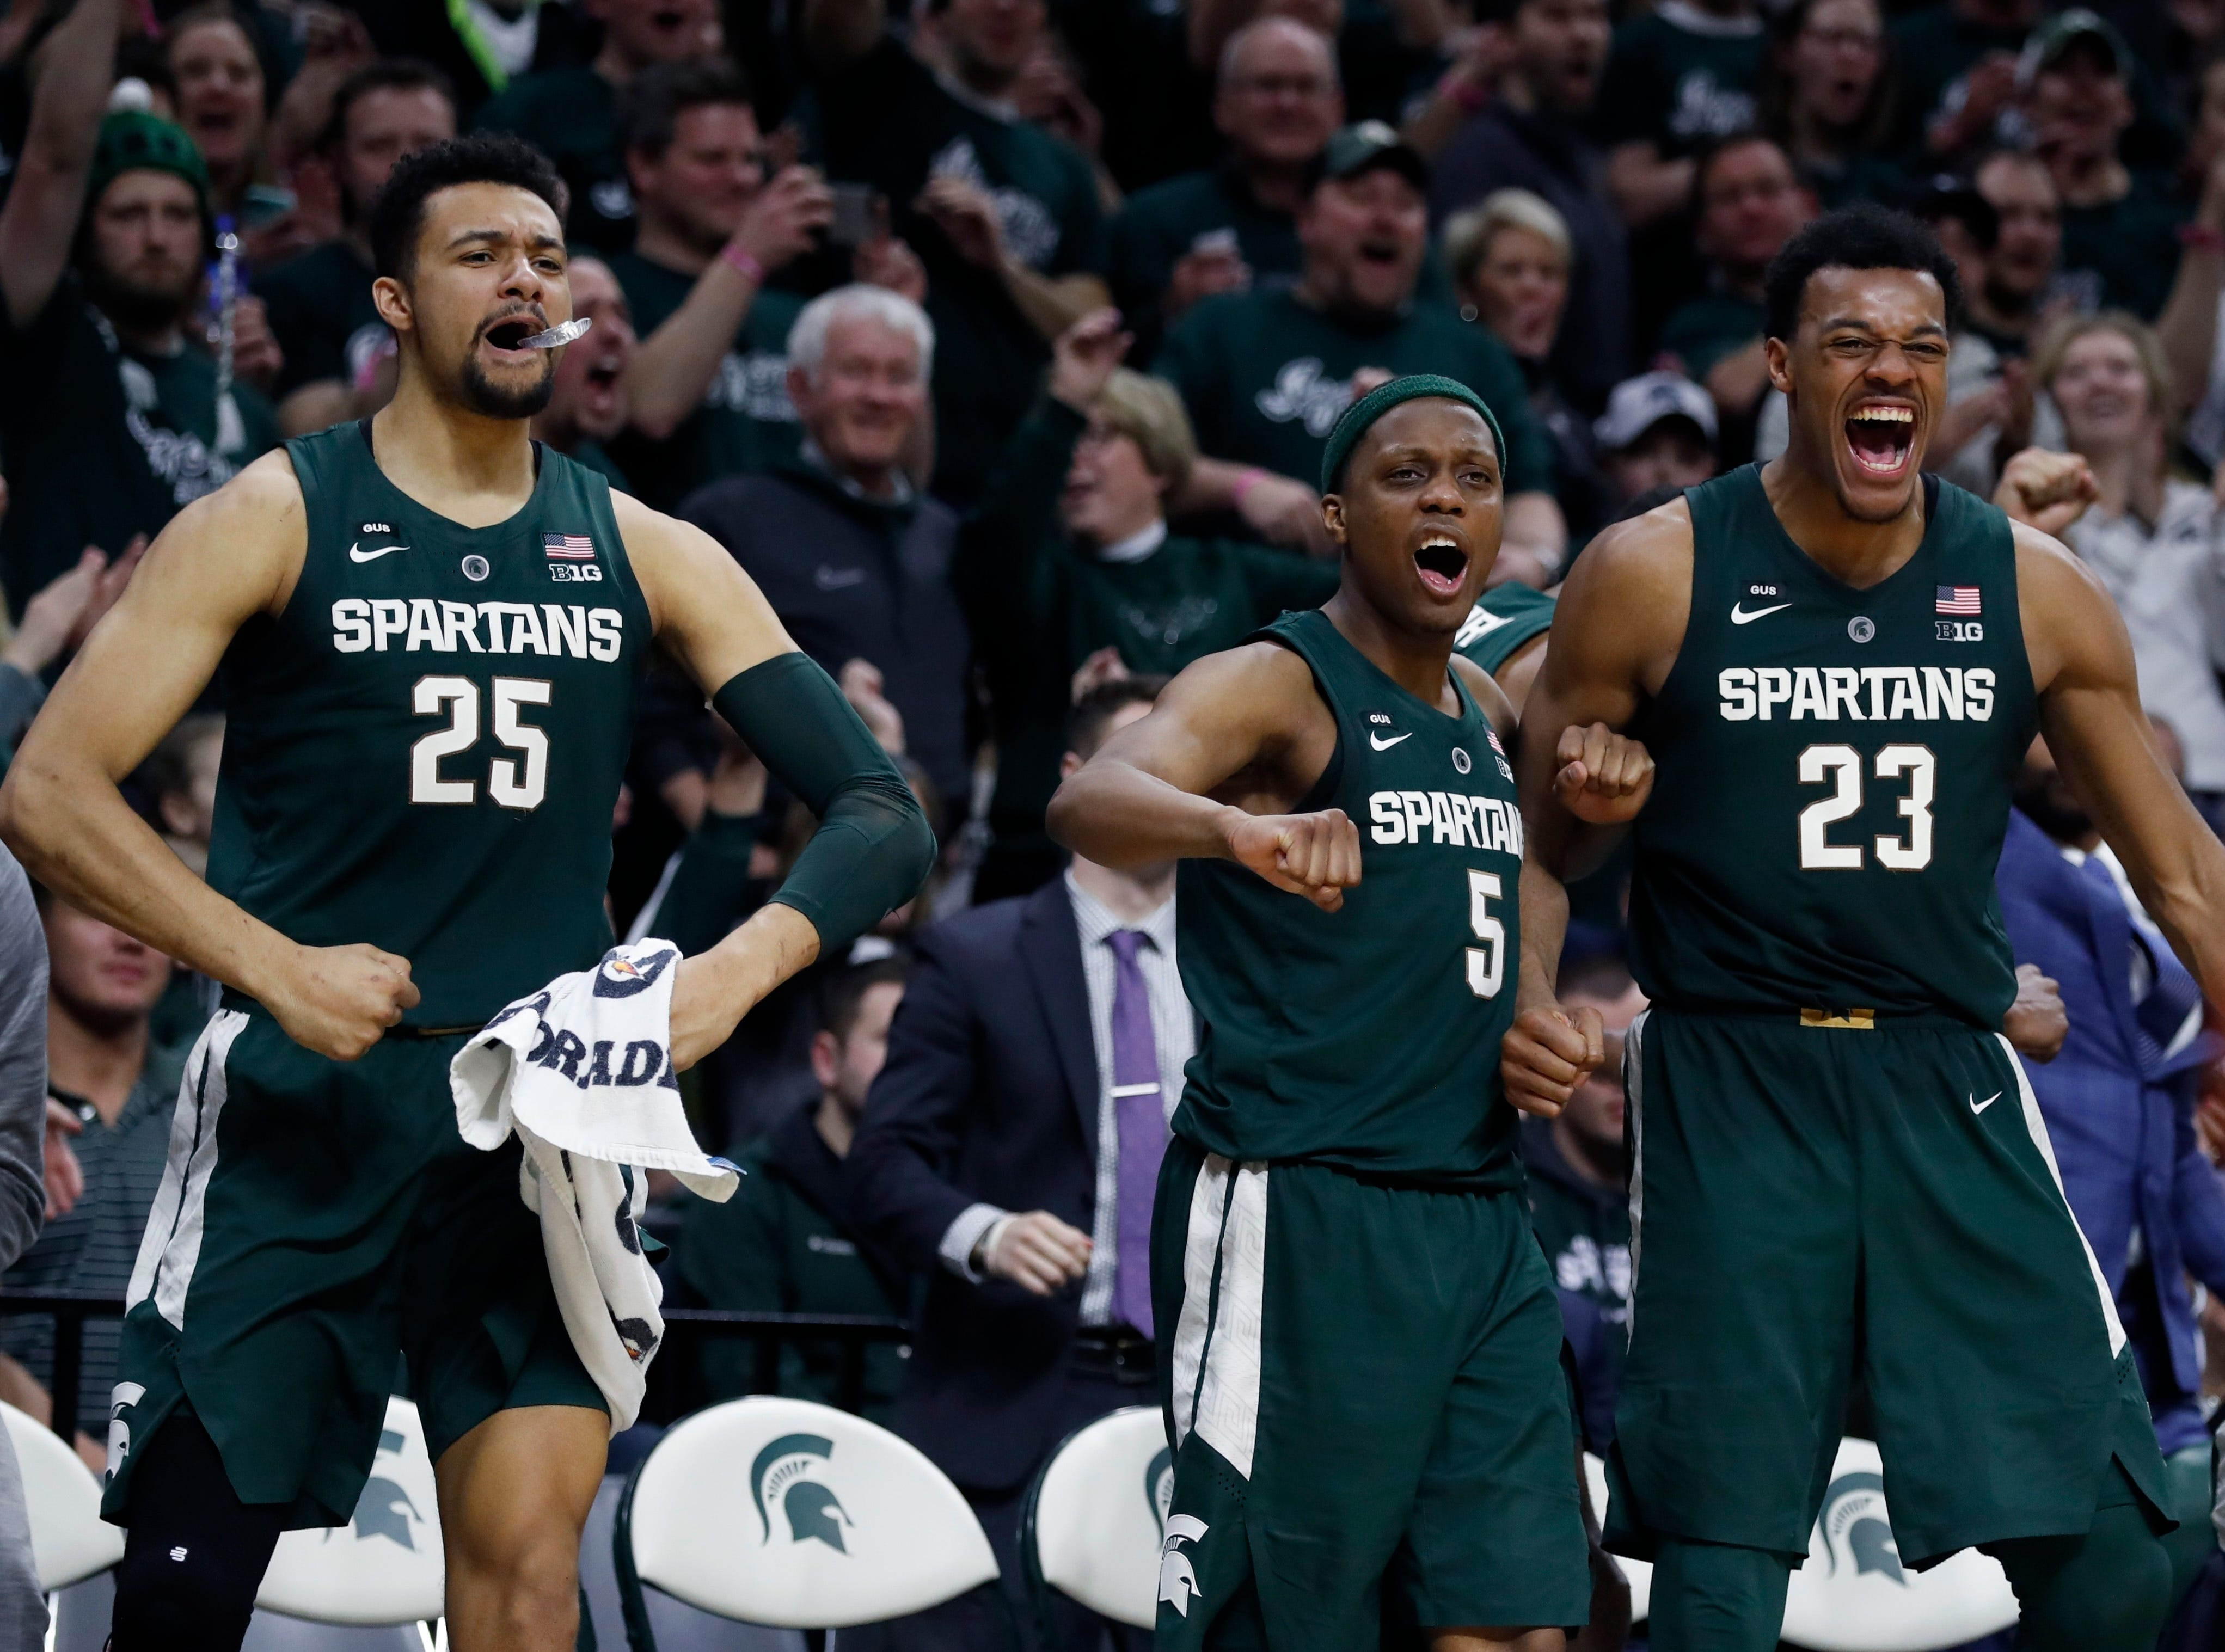 From left, Michigan State forward Kenny Goins (25), guard Cassius Winston (5), and forward Xavier Tillman (23) react after a basket by Brock Washington during the second half of an NCAA college basketball game against Nebraska, Tuesday, March 5, 2019, in East Lansing, Mich.